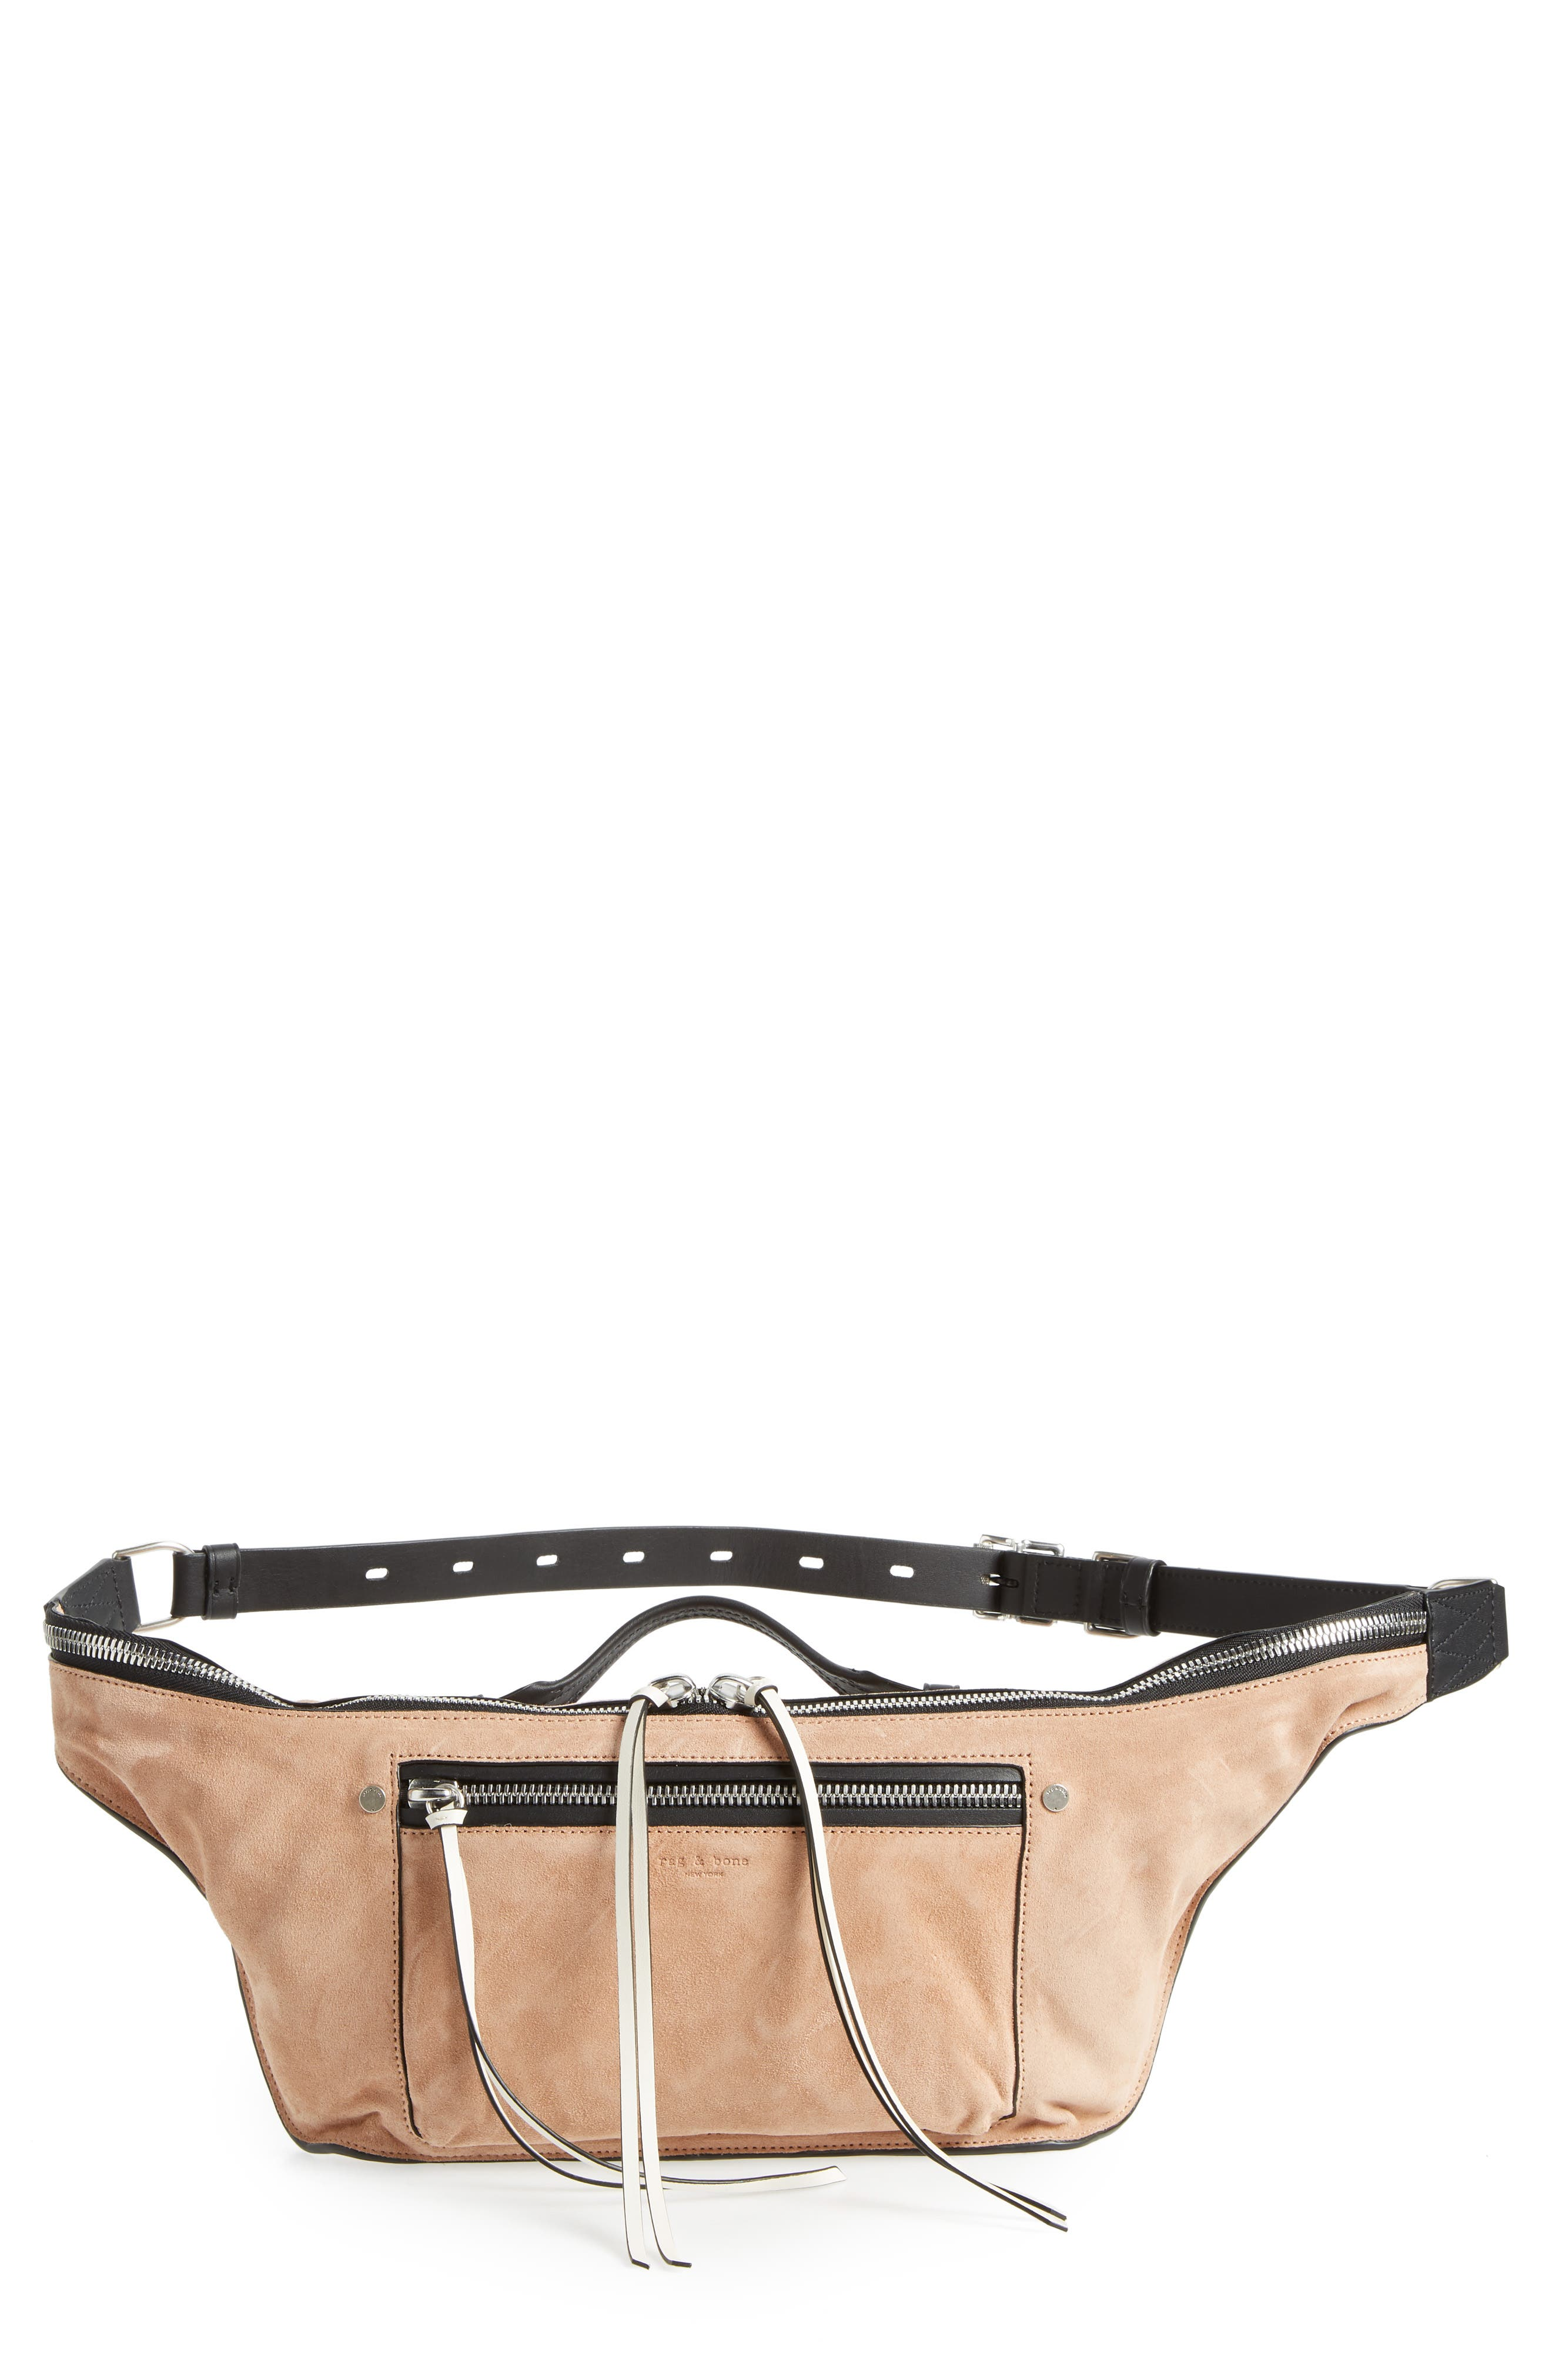 Elliot Leather Fanny Pack,                         Main,                         color, NUDE SUEDE